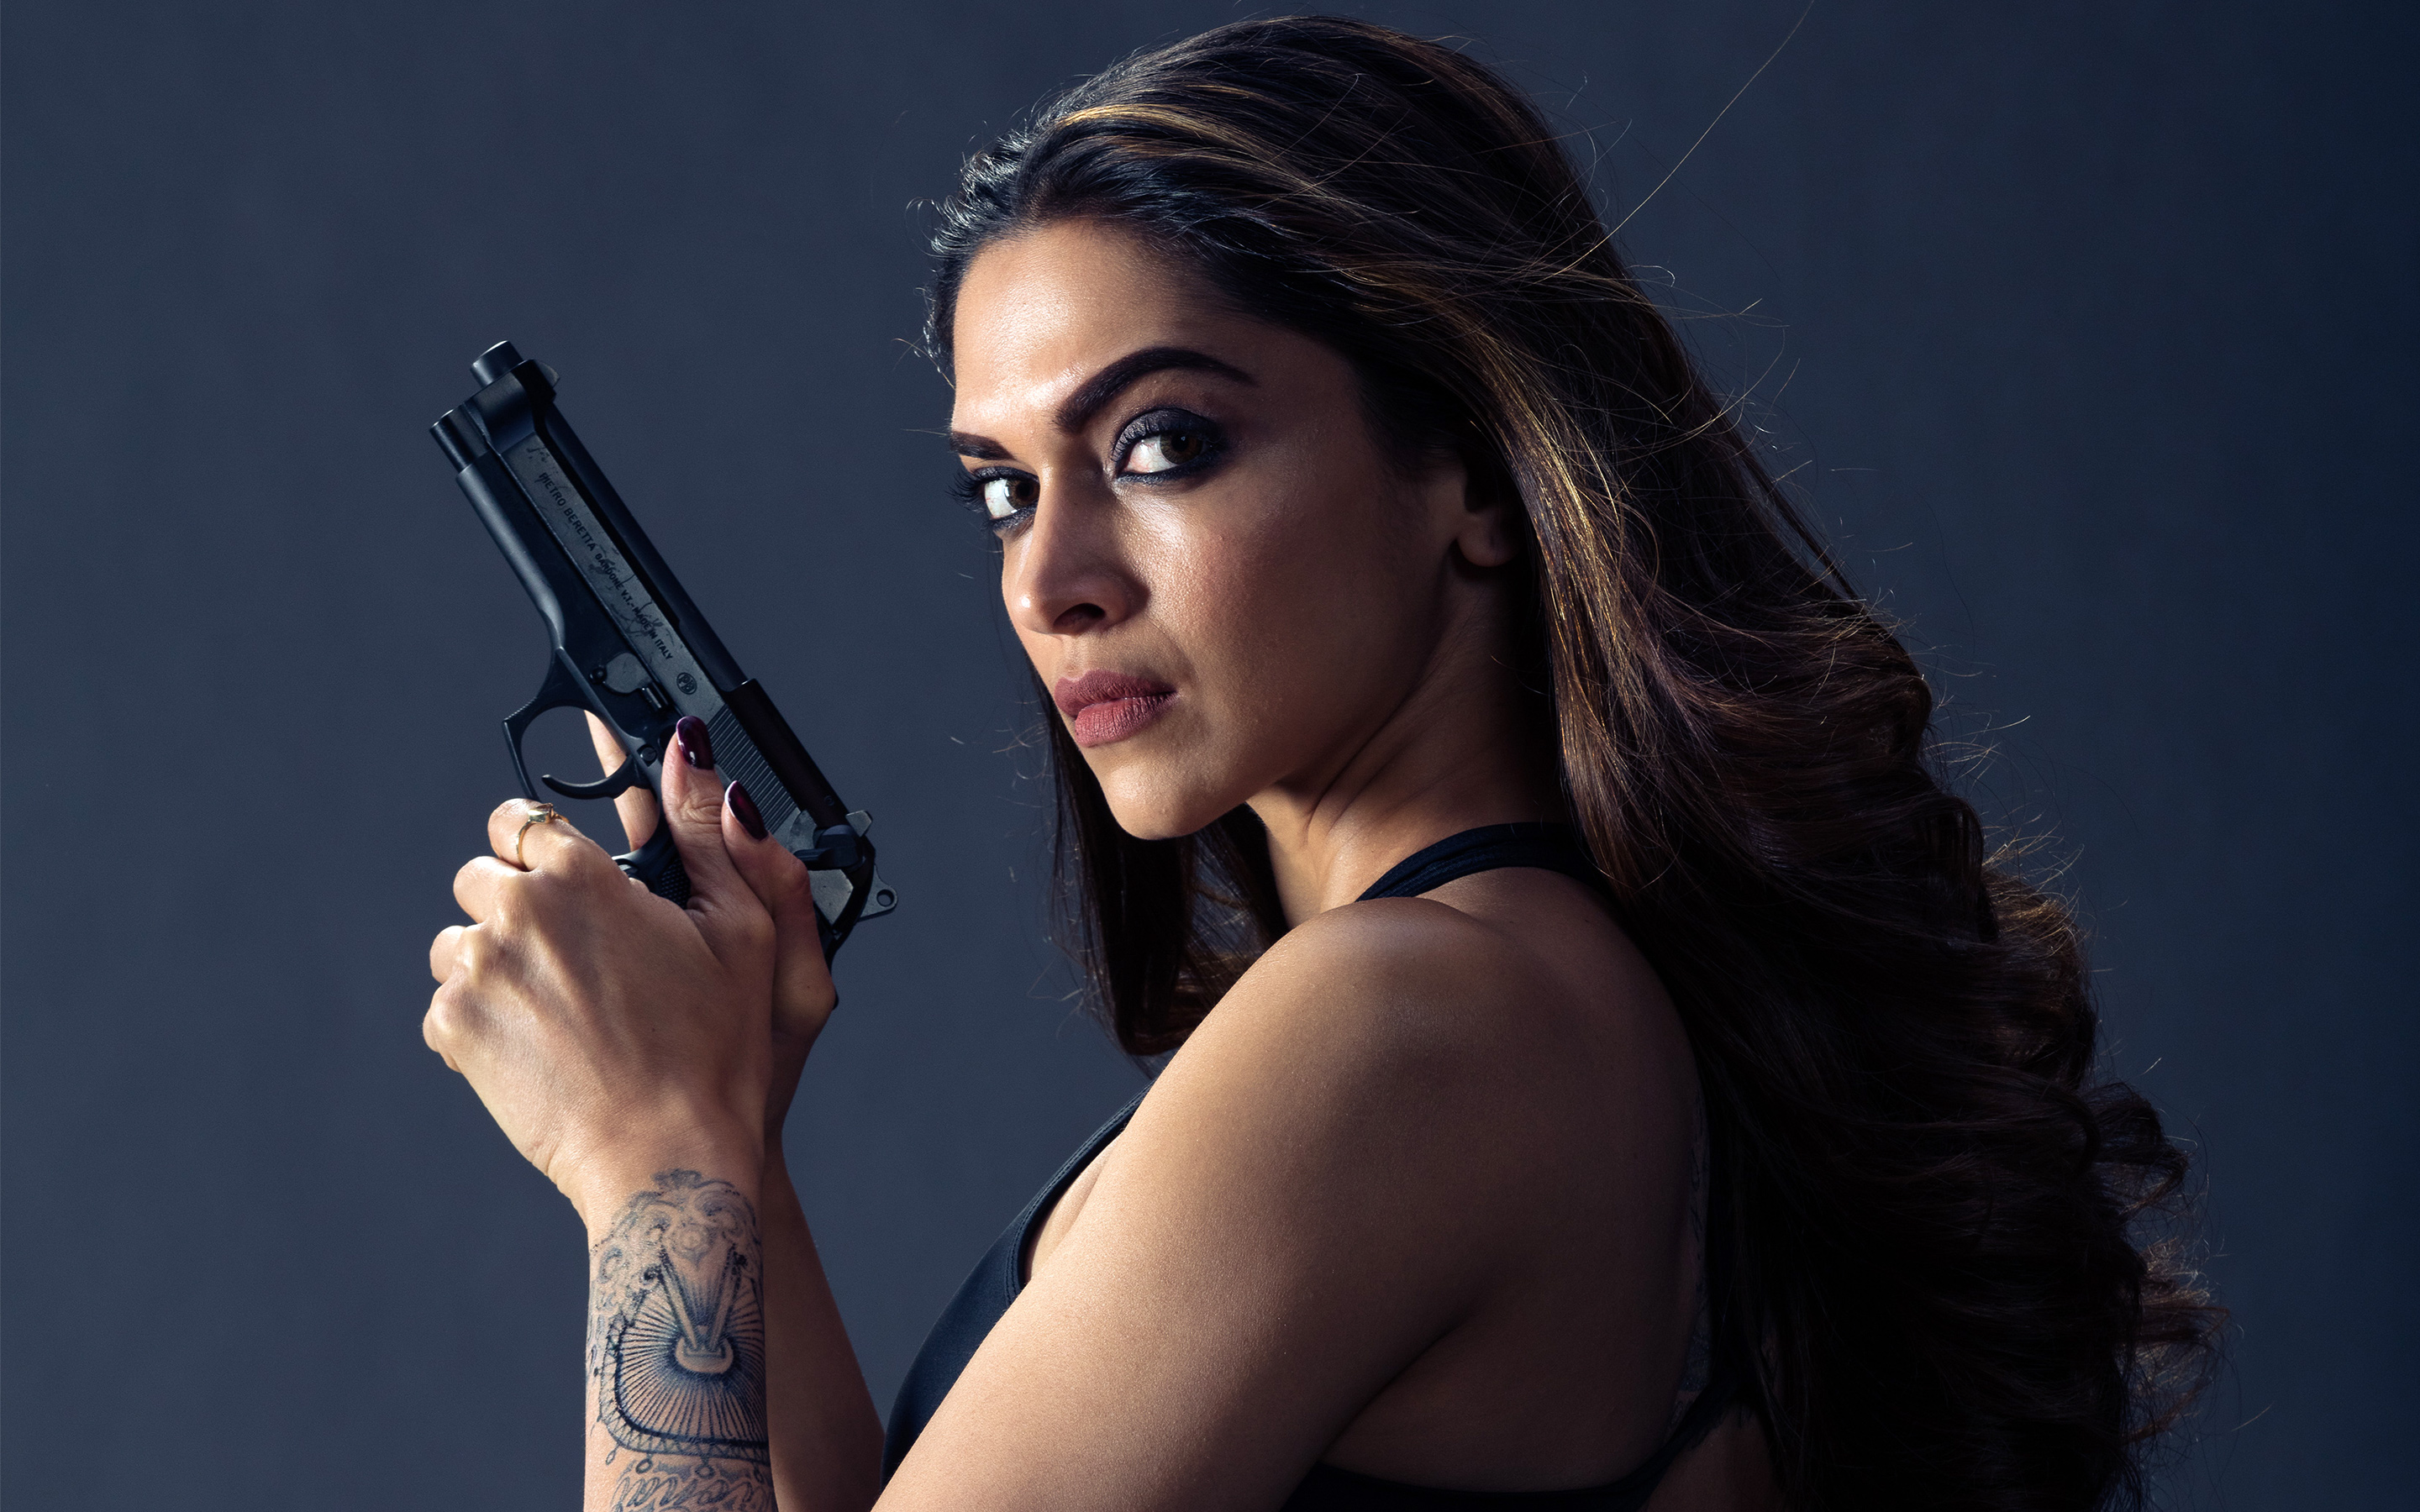 XXx Return of Xander Cage Deepika Padukone wallpaper